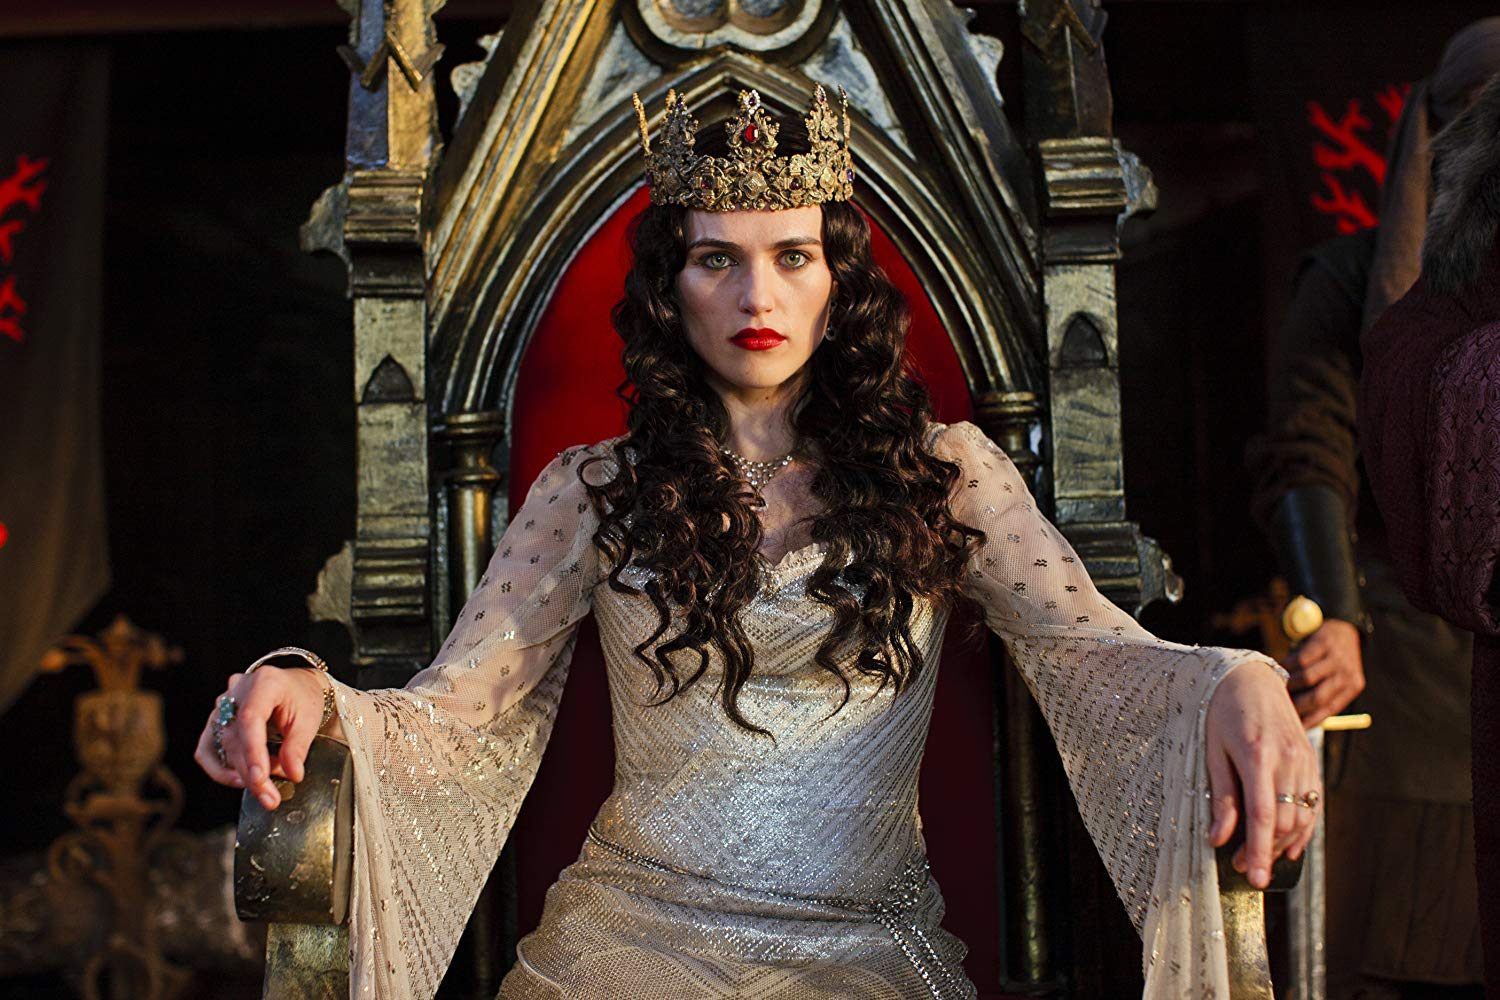 She sits on the throne of Camelot as queen.